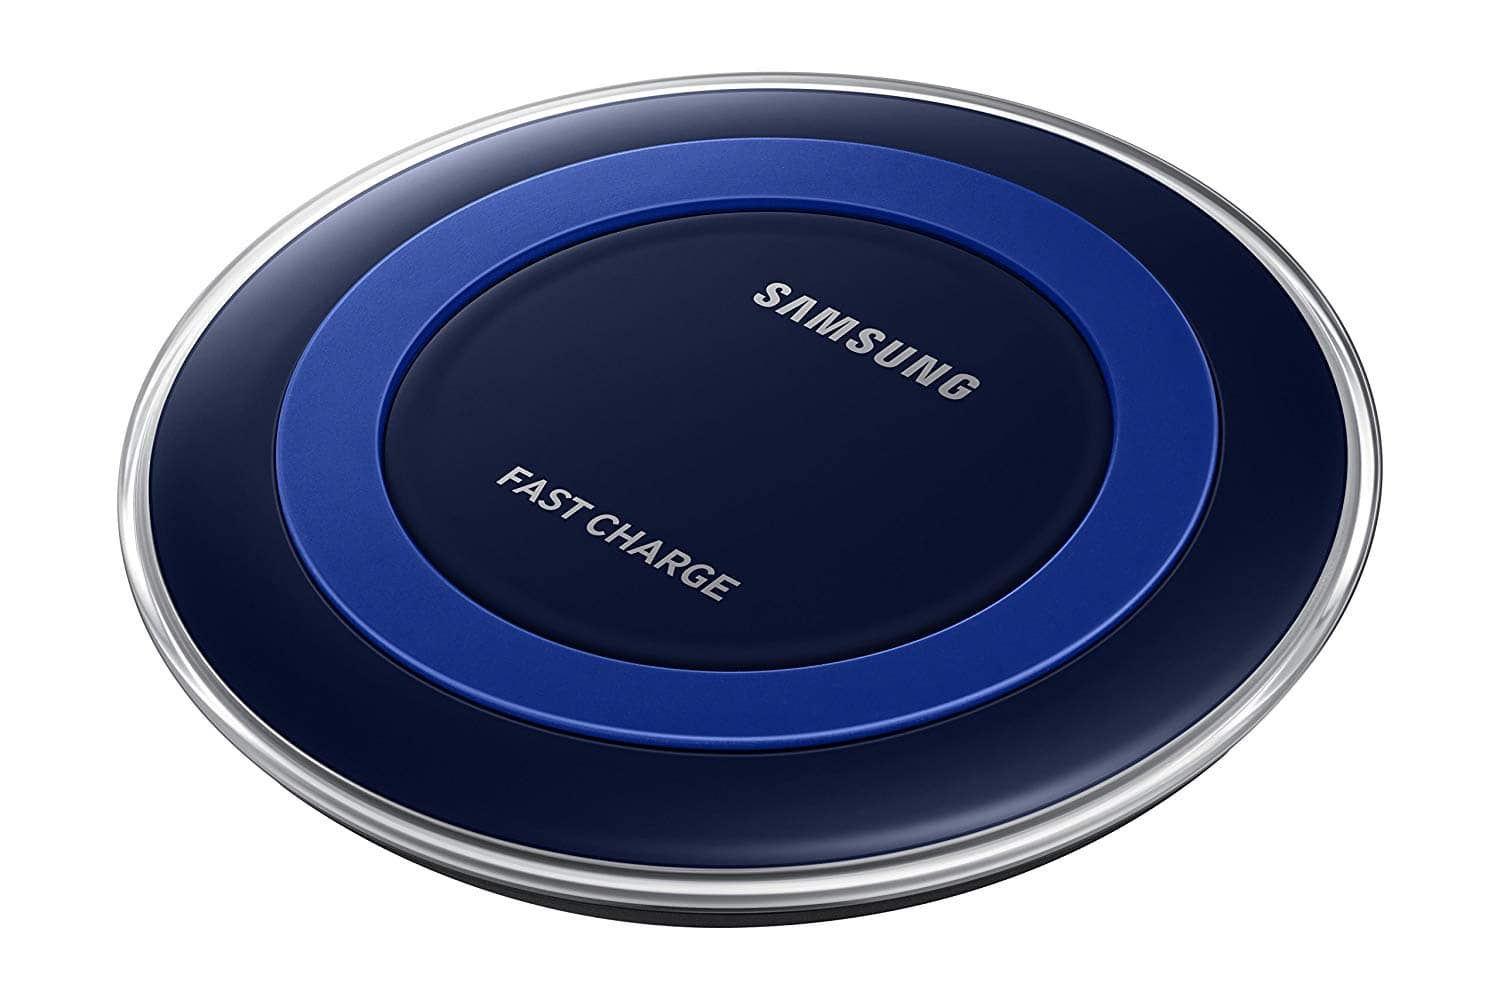 Samsung Fast Charge Wireless Charger - $20